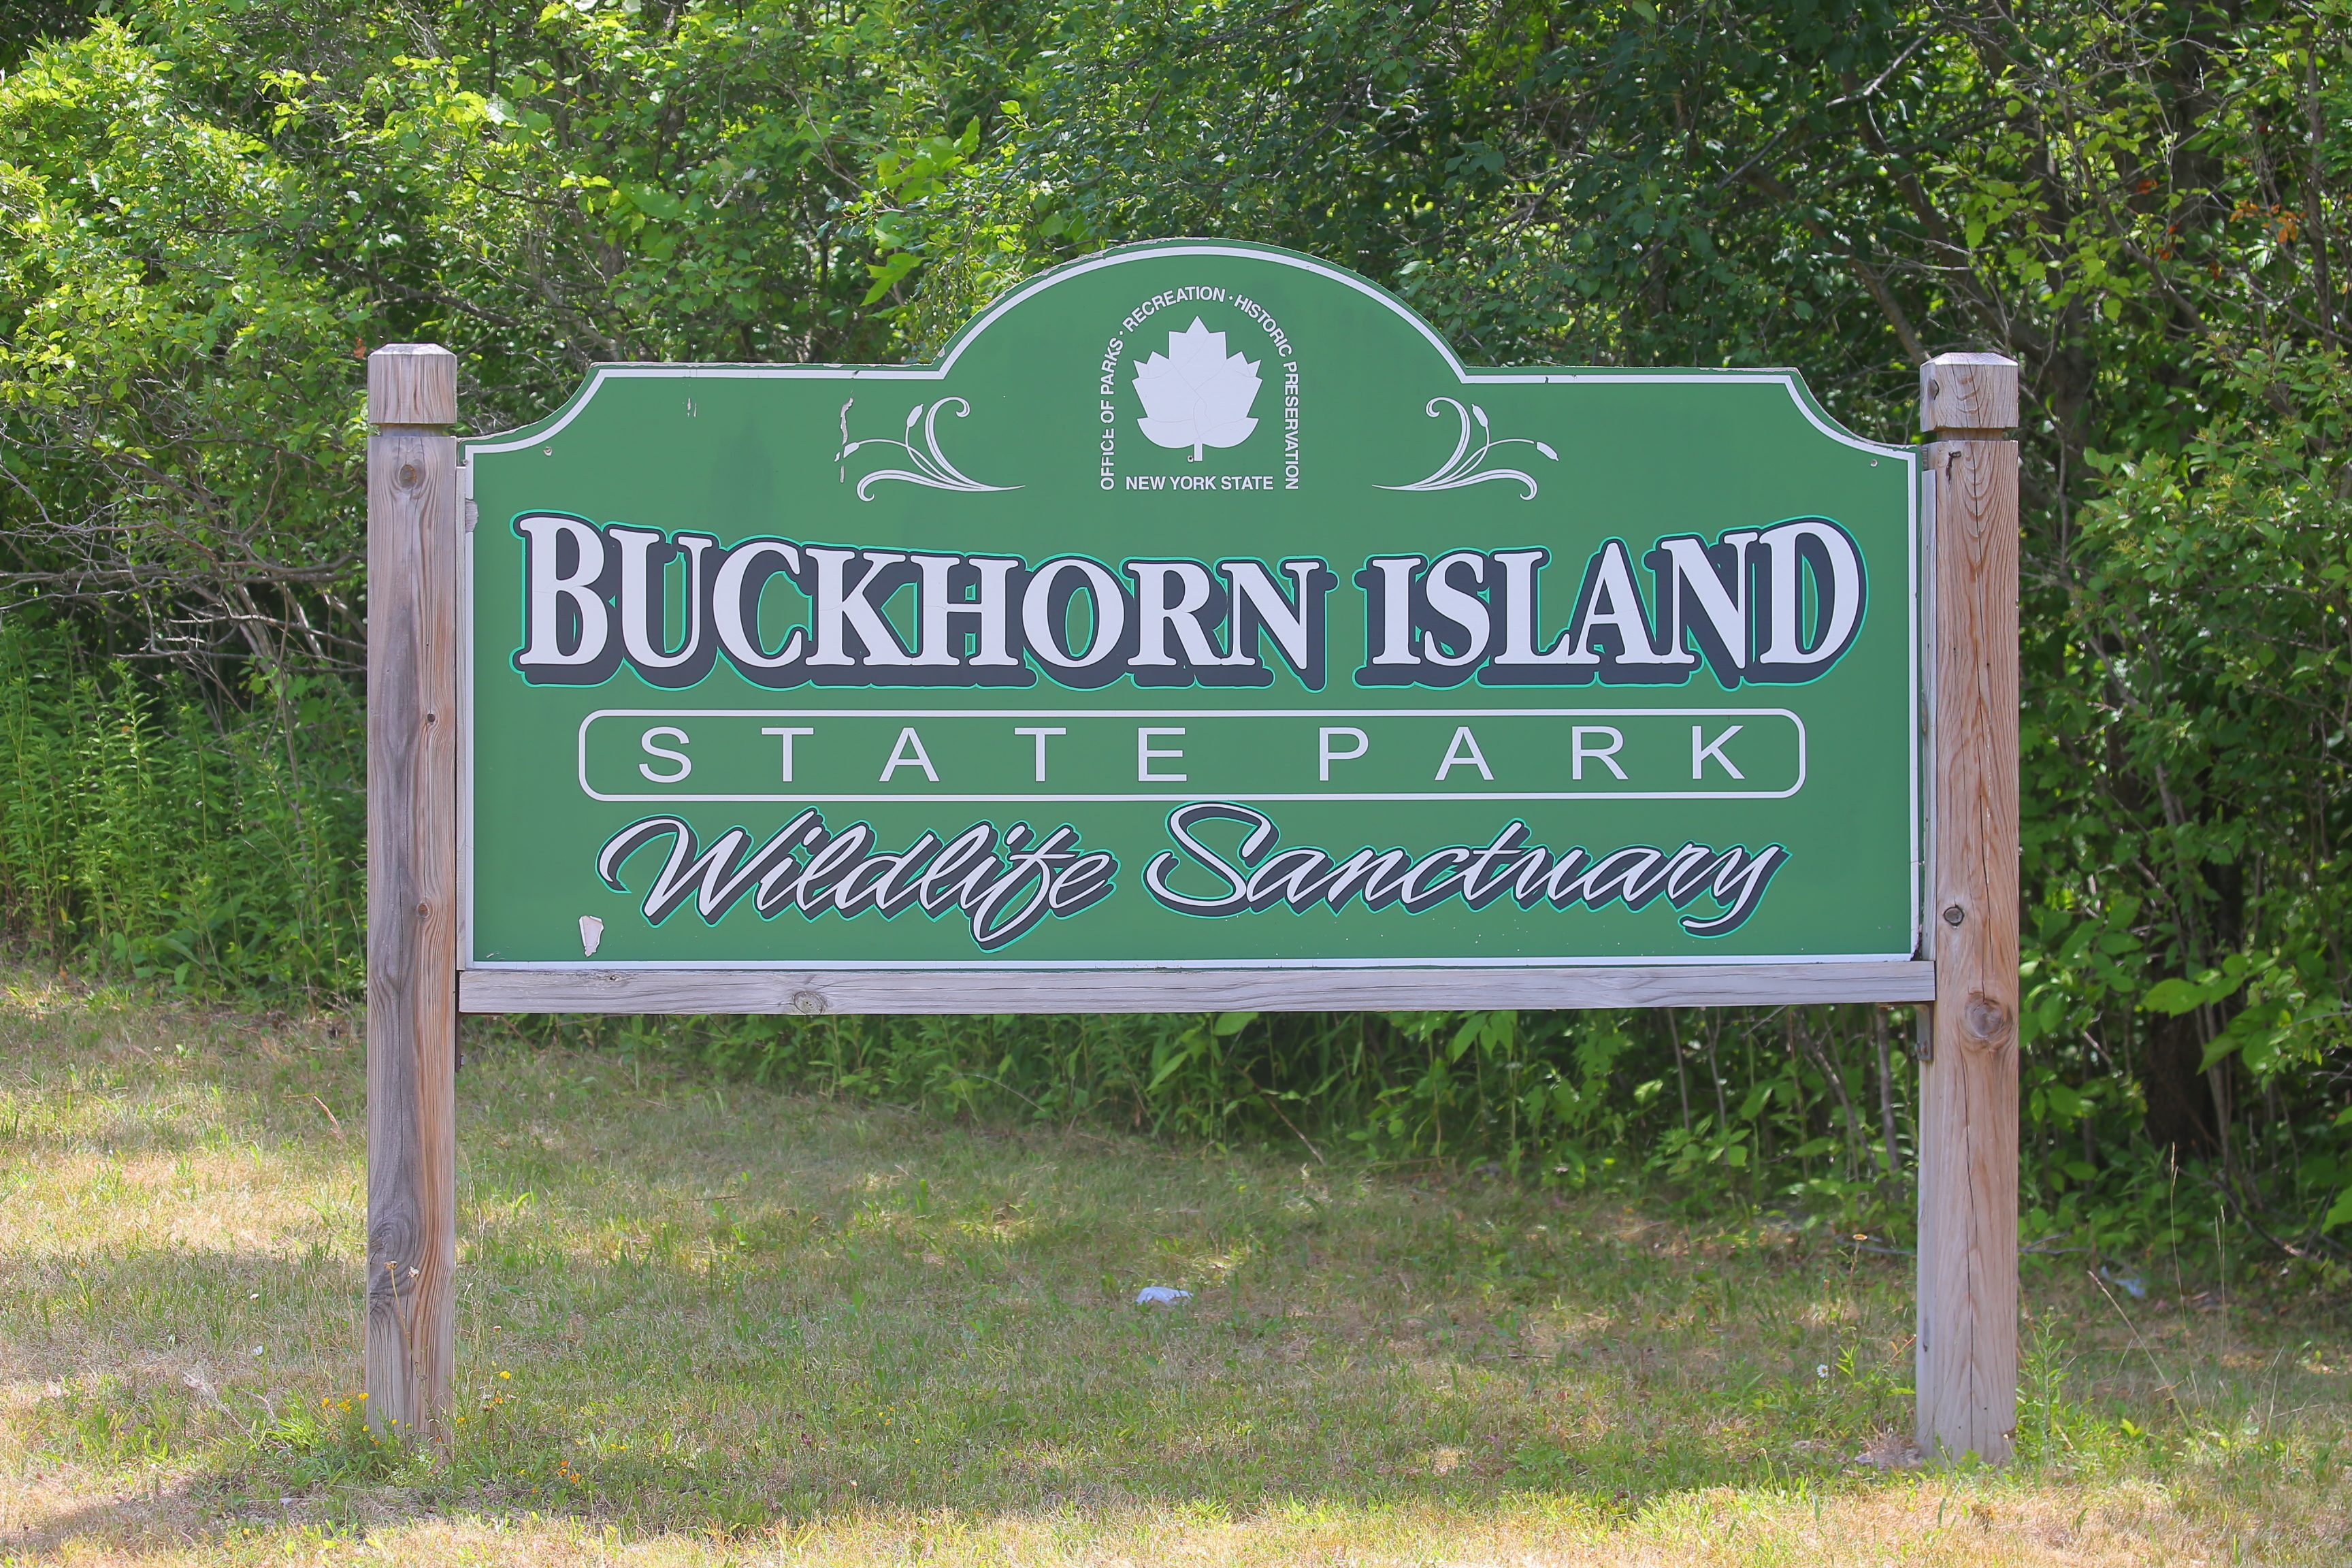 On Friday, Nov. 25, Naturalist Tom Kerr will be leading a hike through Buckhorn Island State Park on Grand Island from 10 a.m. to 1 p.m. The focus will be on migrating waterfowl through the area. (John Hickey/Buffalo News)